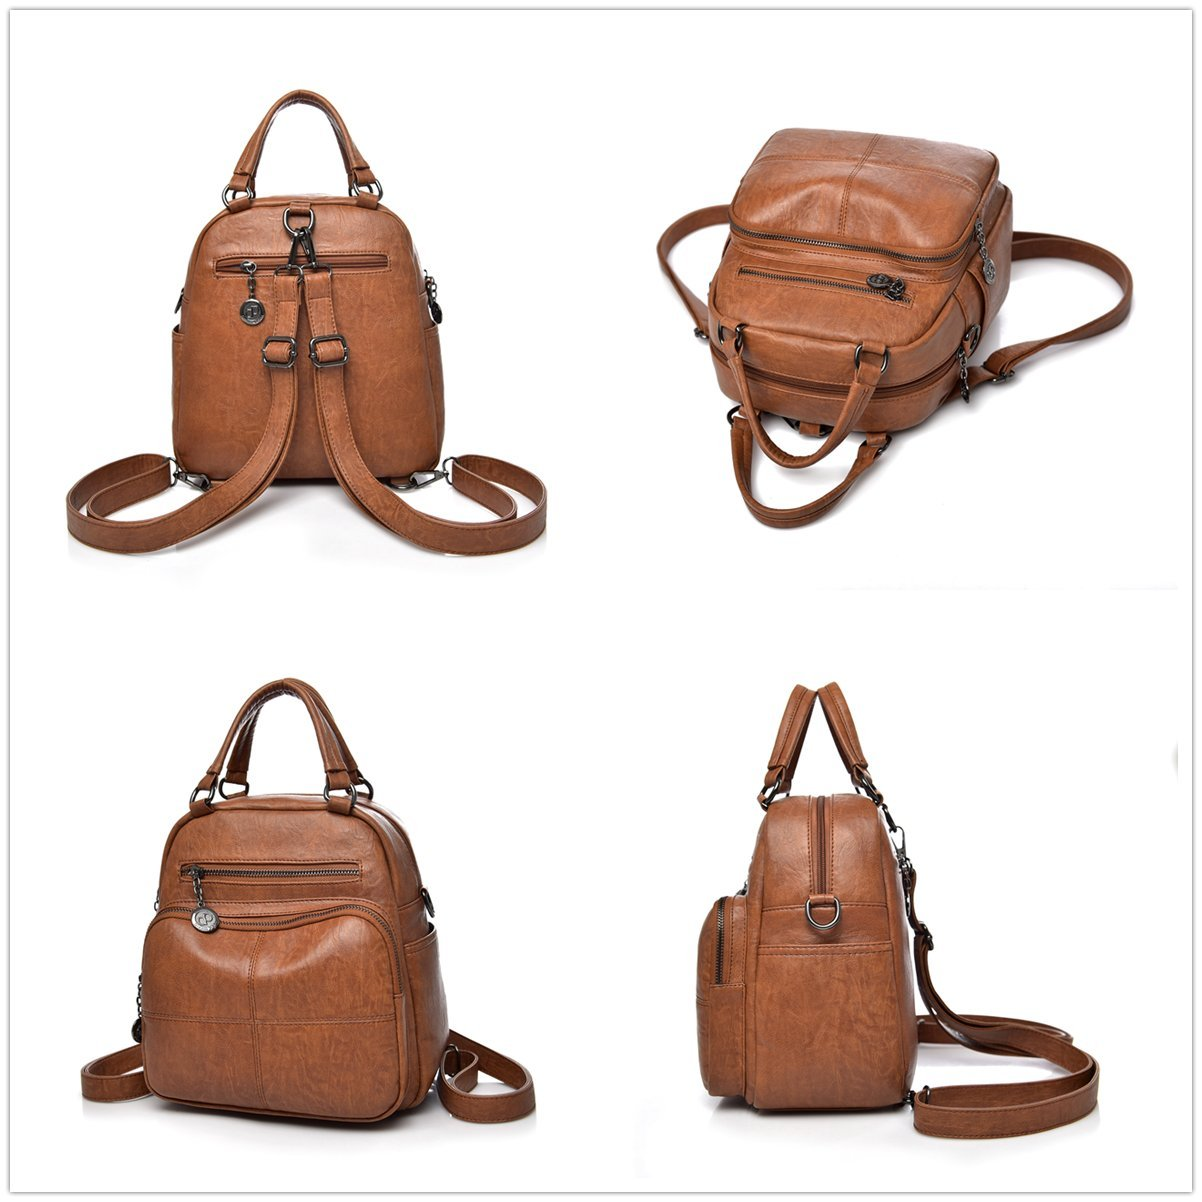 Amazon.com  Alovhad Leather Backpack Purse Fashion Shoulder Bags Handbags  For Women School College  Alovhad Store a89ee75136